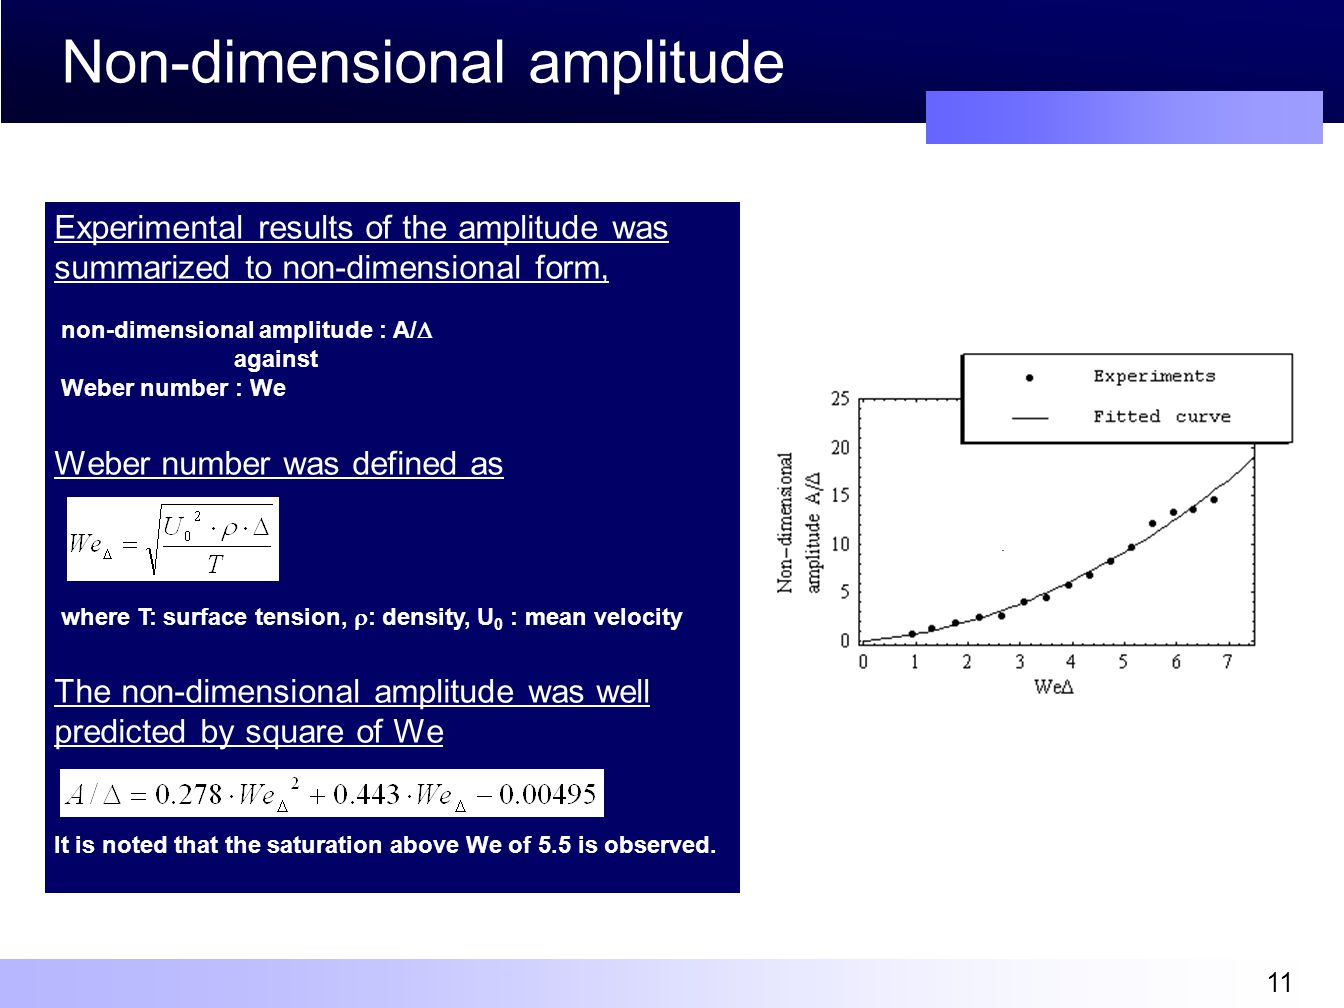 11 Non-dimensional amplitude Experimental results of the amplitude was summarized to non-dimensional form, non-dimensional amplitude : A/  against We